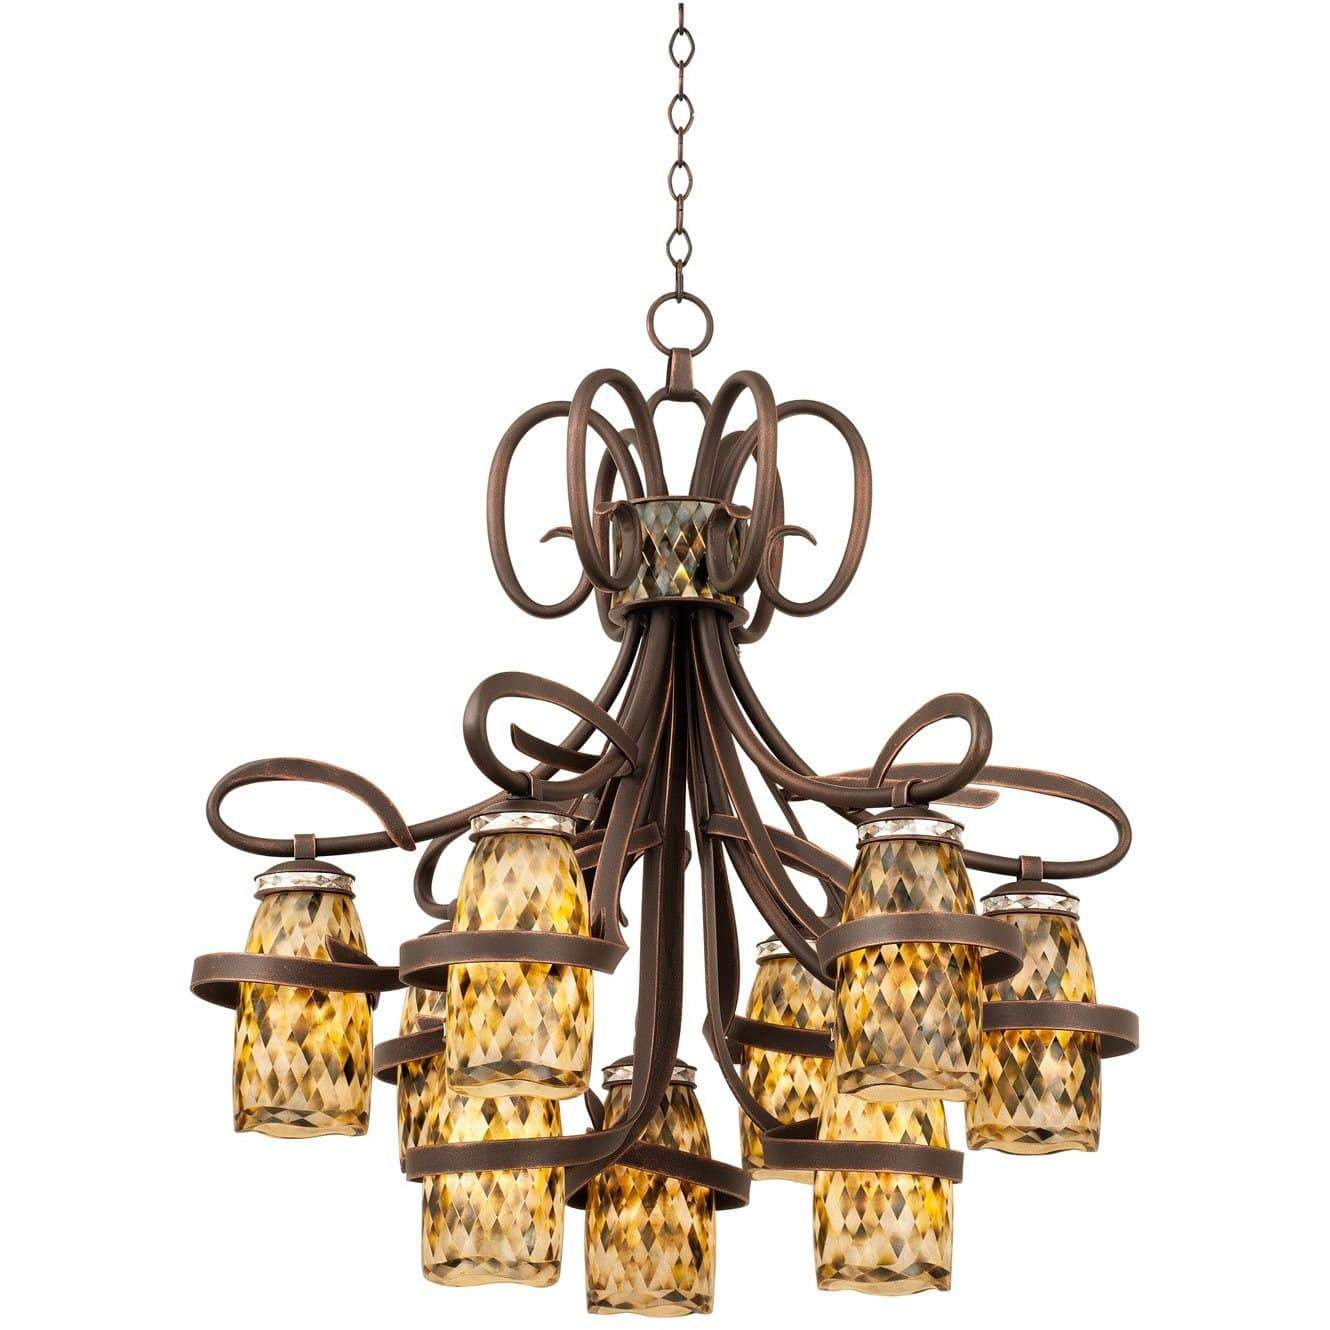 Kalco Lighting Chandeliers Monaco 9 Light Chandelier By Kalco Lighting 6023